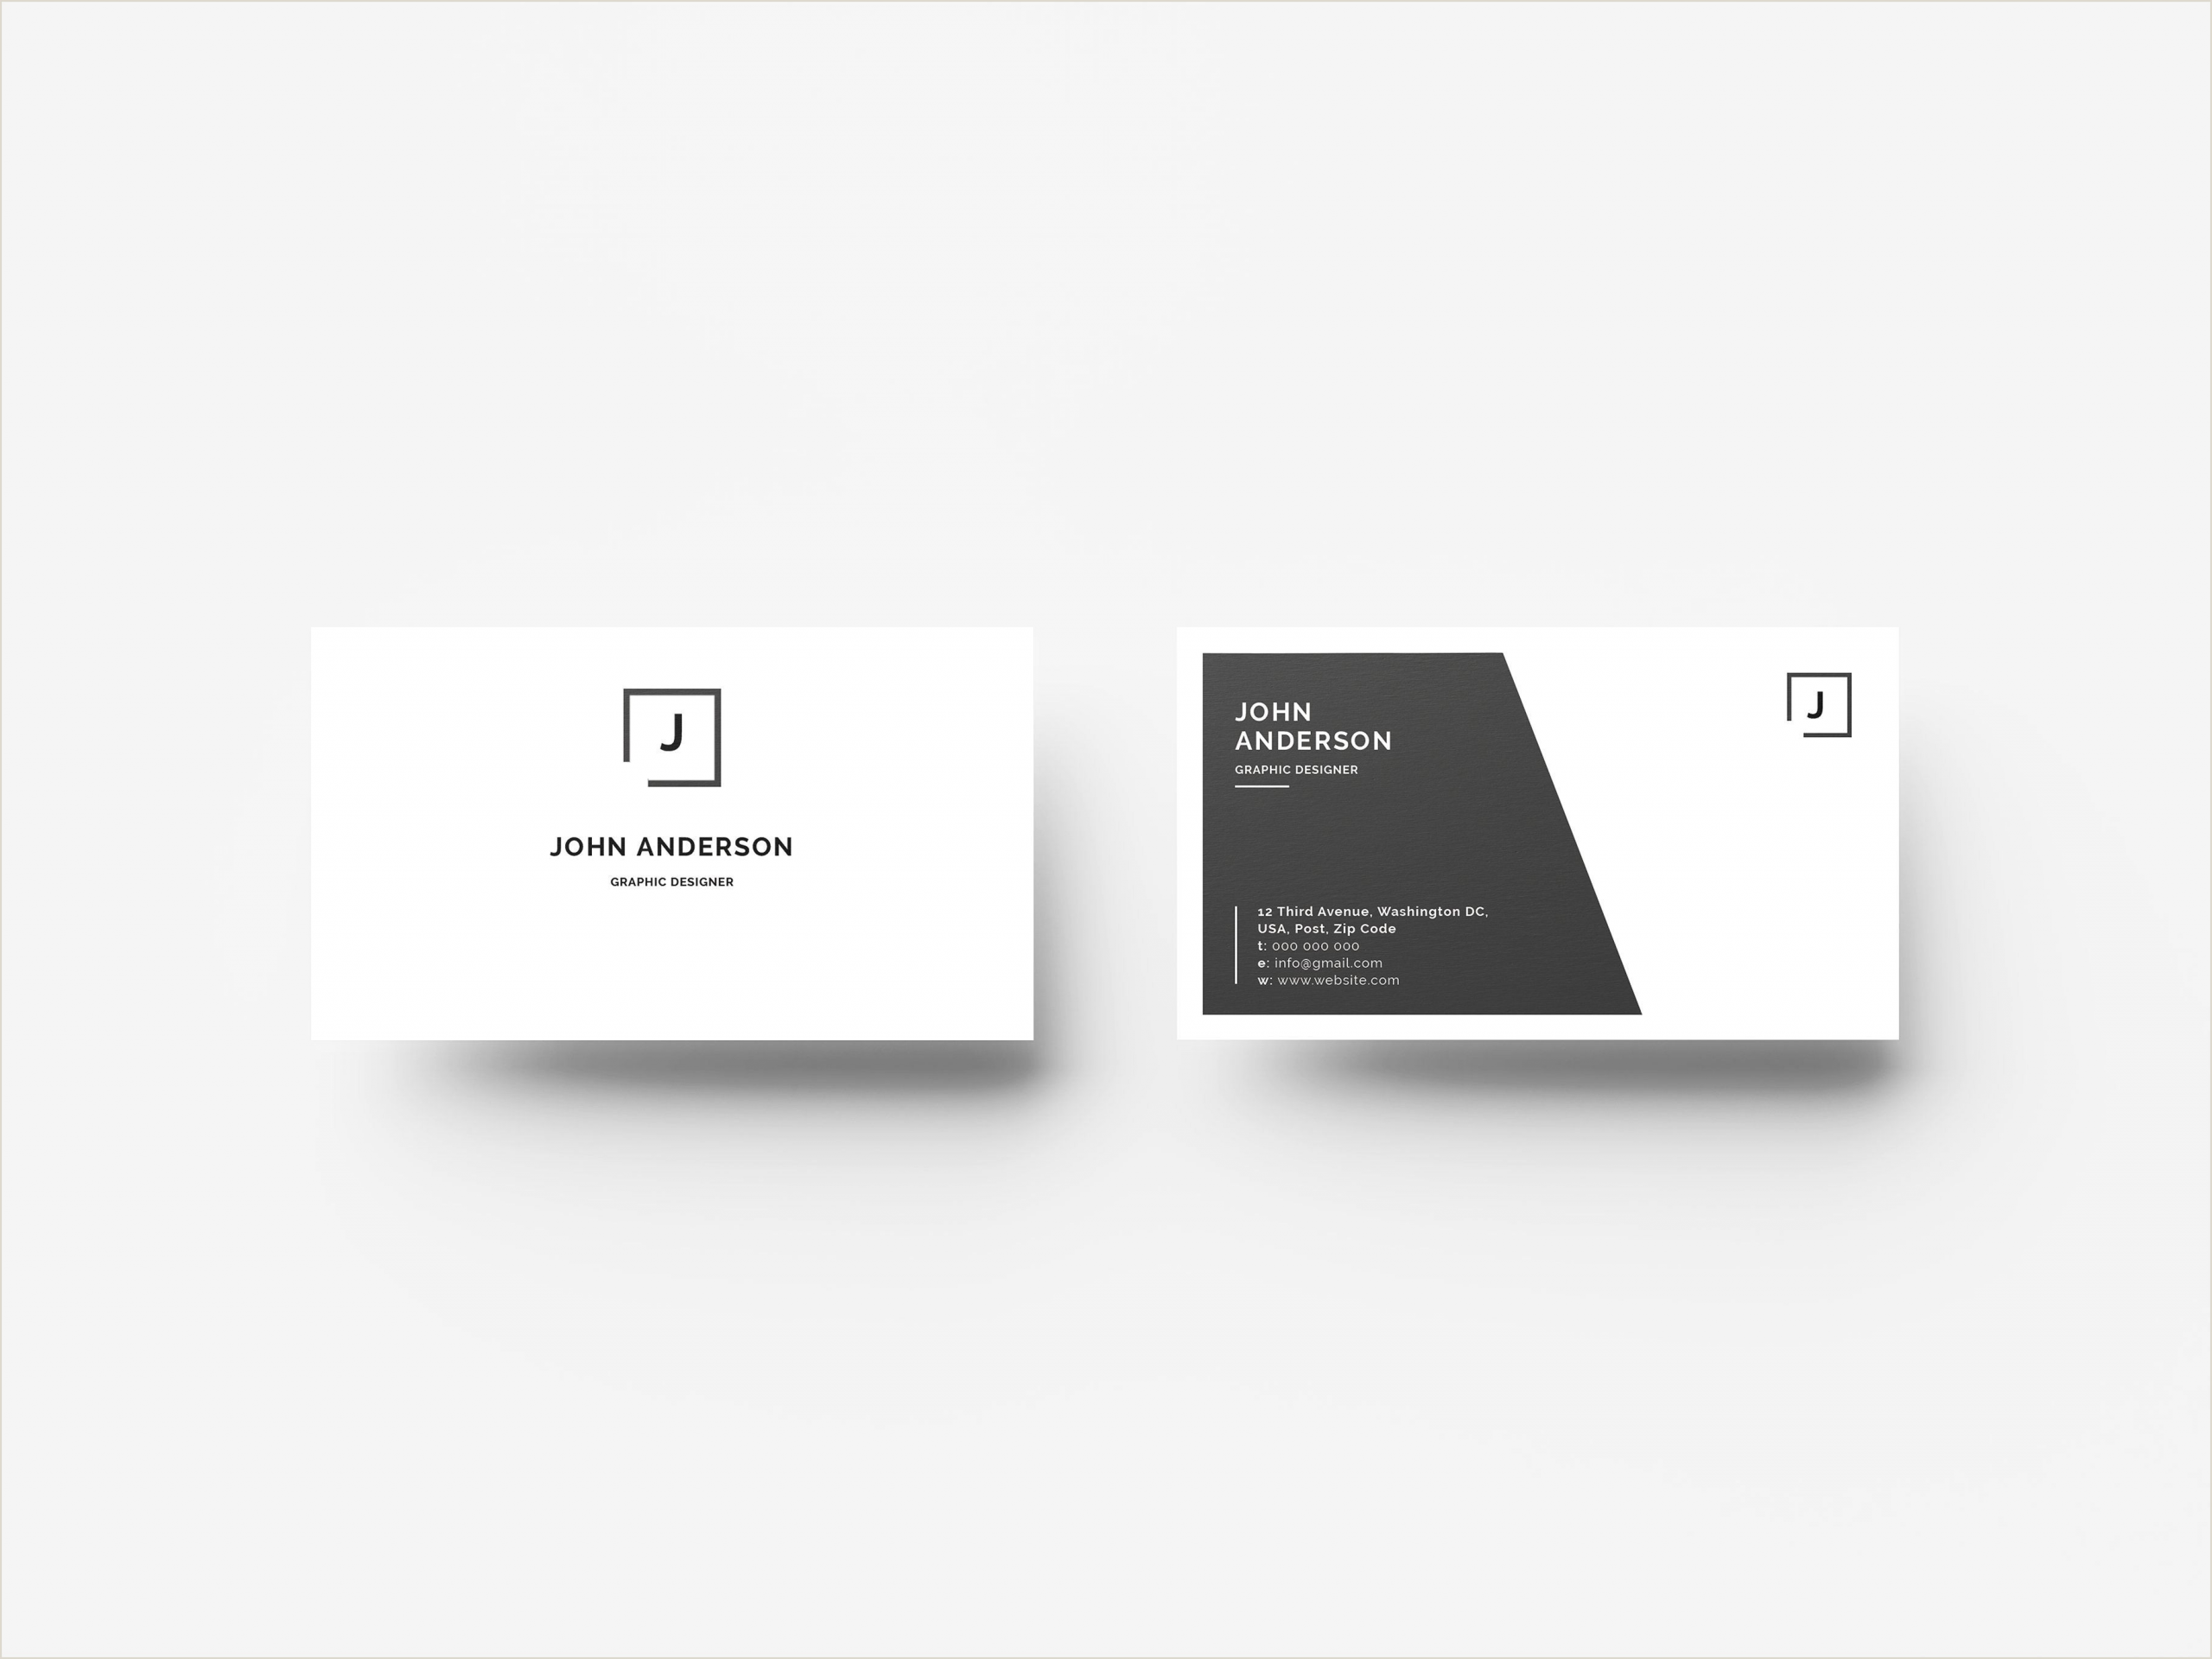 Vertical Business Card Layout Creative Business Card A Modern Minimal Business Card This